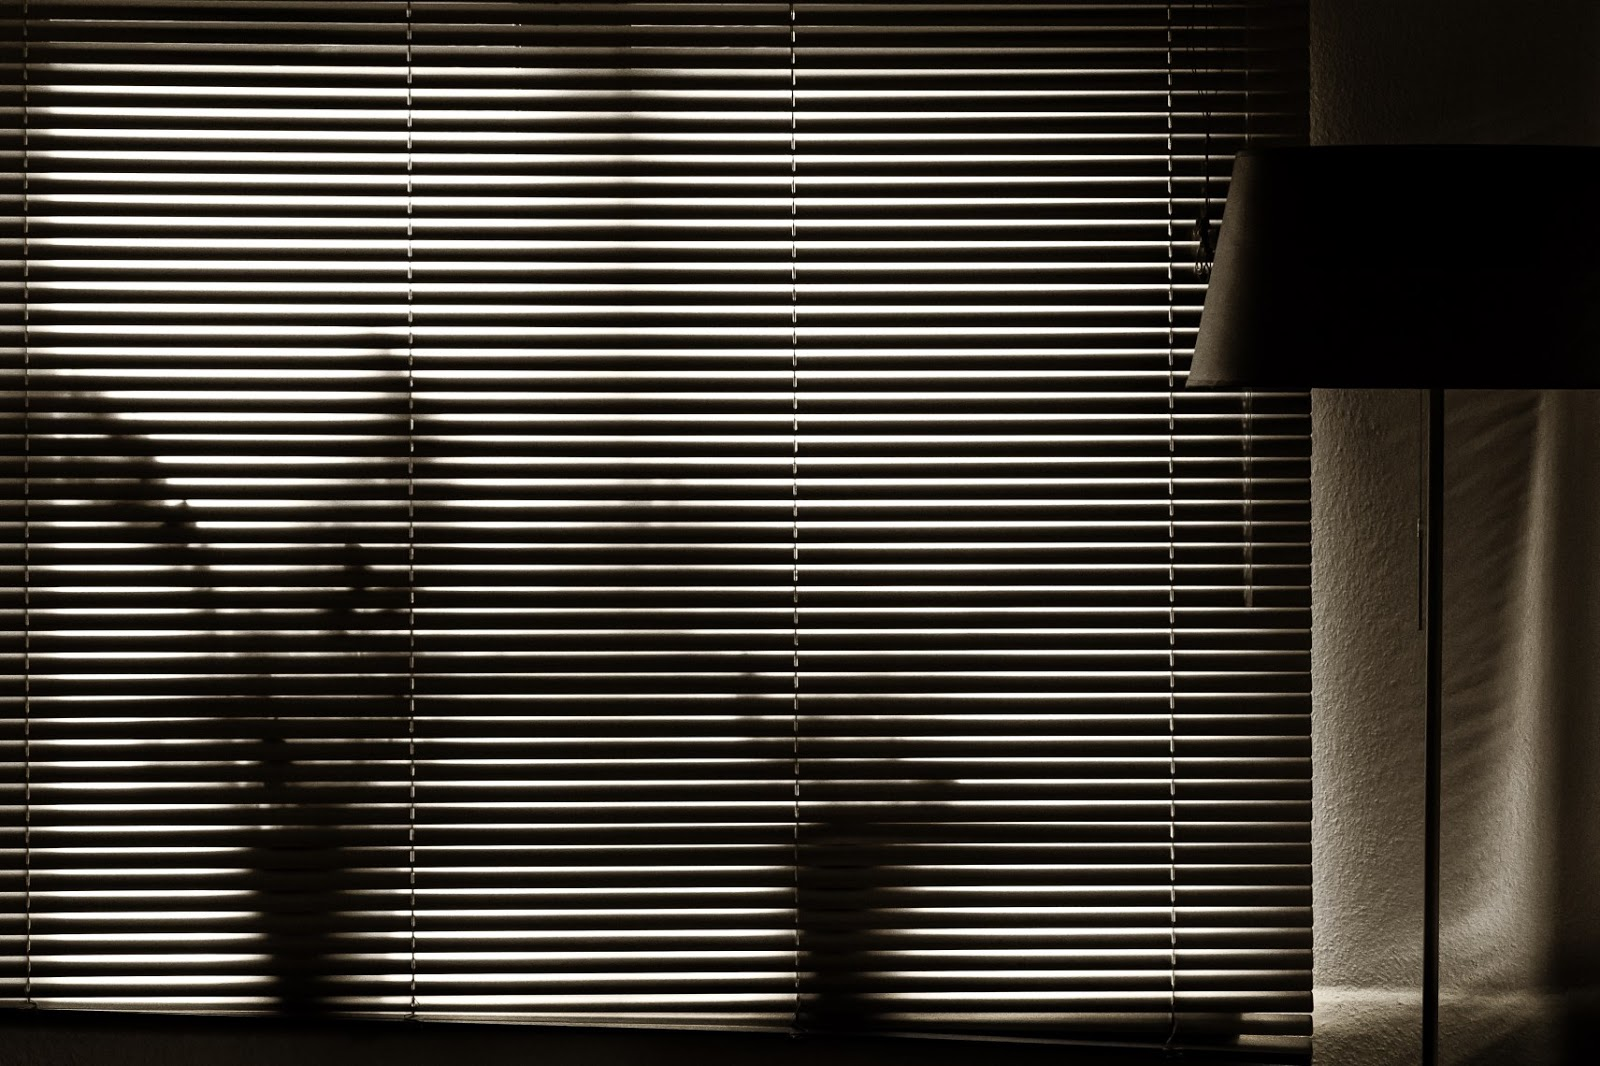 Matthew g beall photography plants window blind lamp 2014